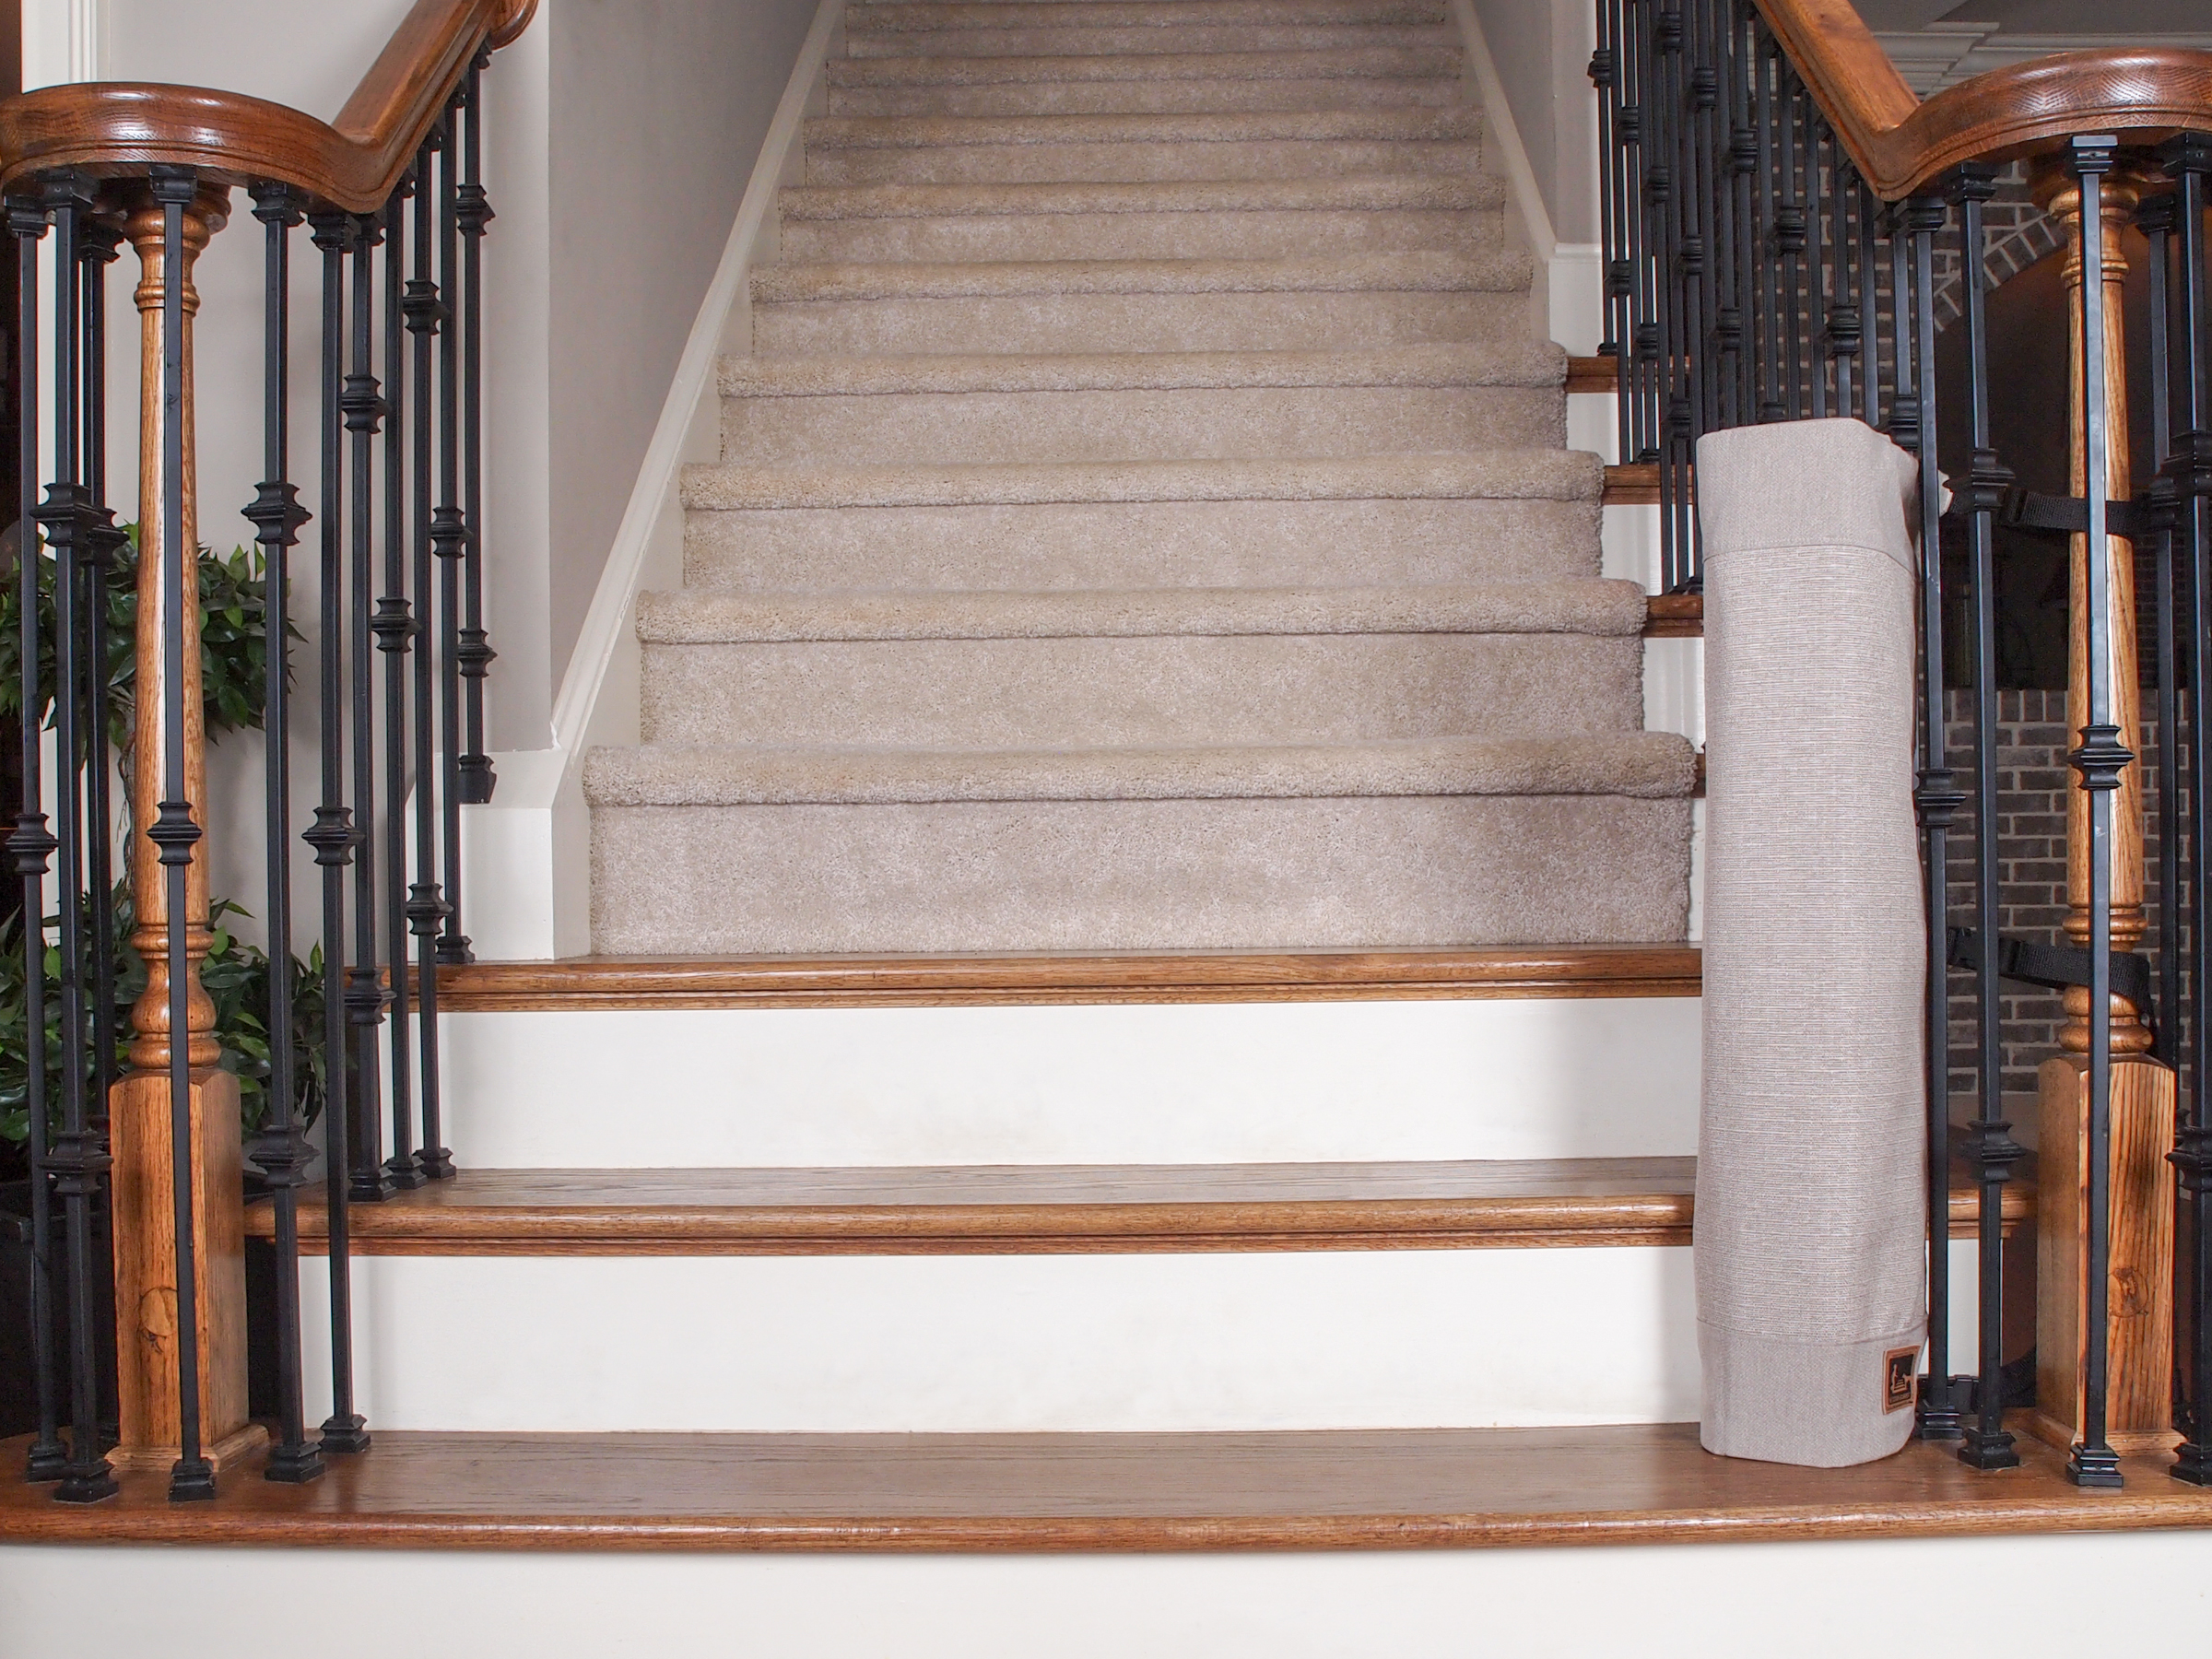 The Stair Barrier Banister To Banister Baby Safety Gate